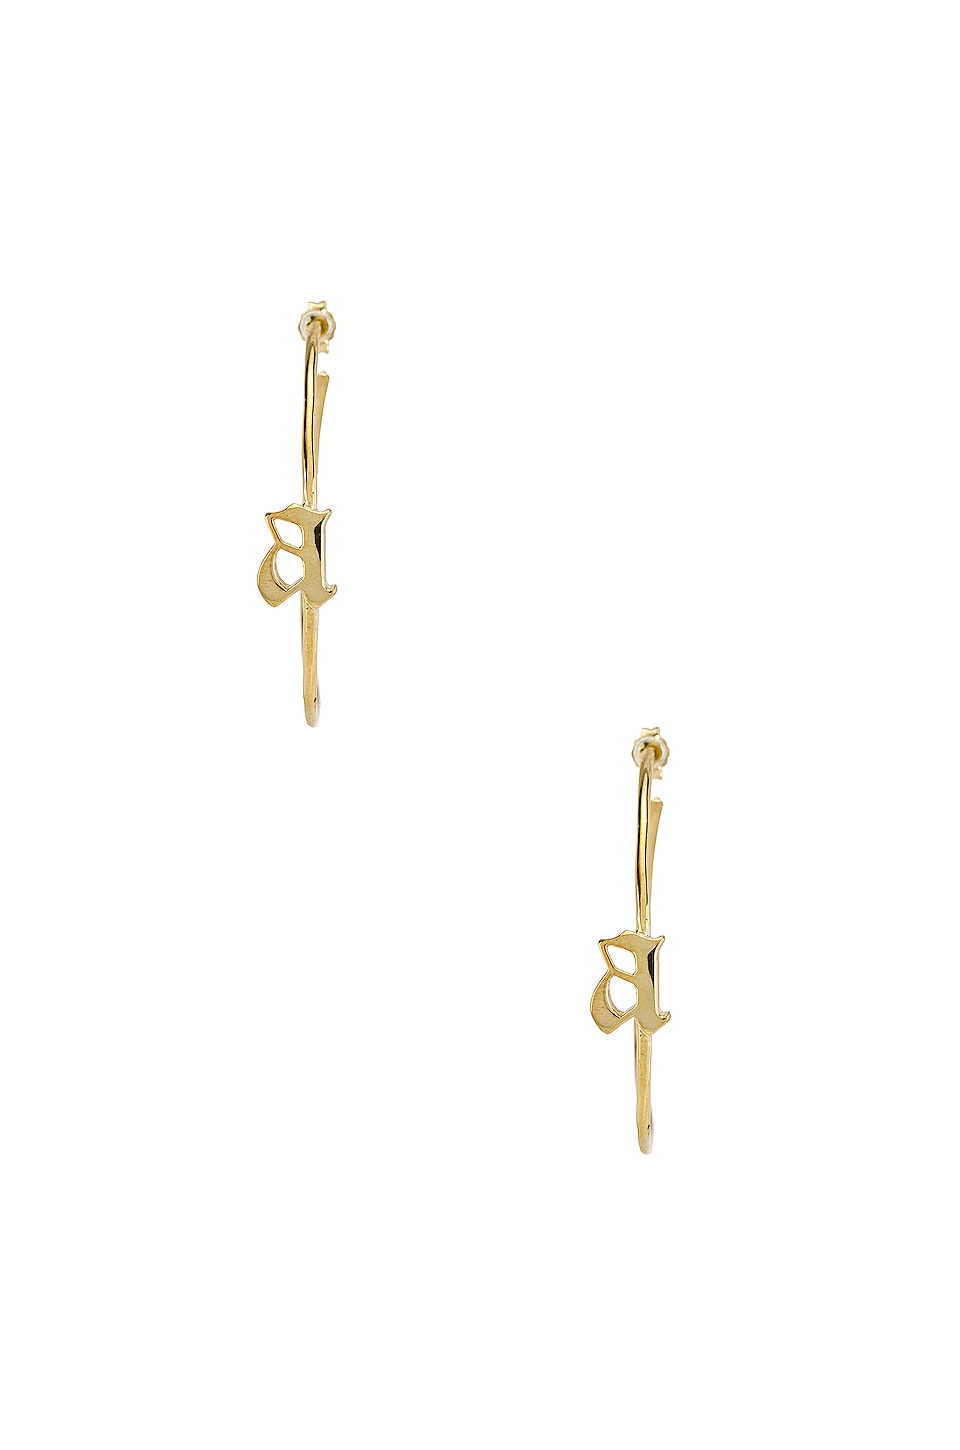 The M Jewelers NY The Split Gothic A Hoops in Gold